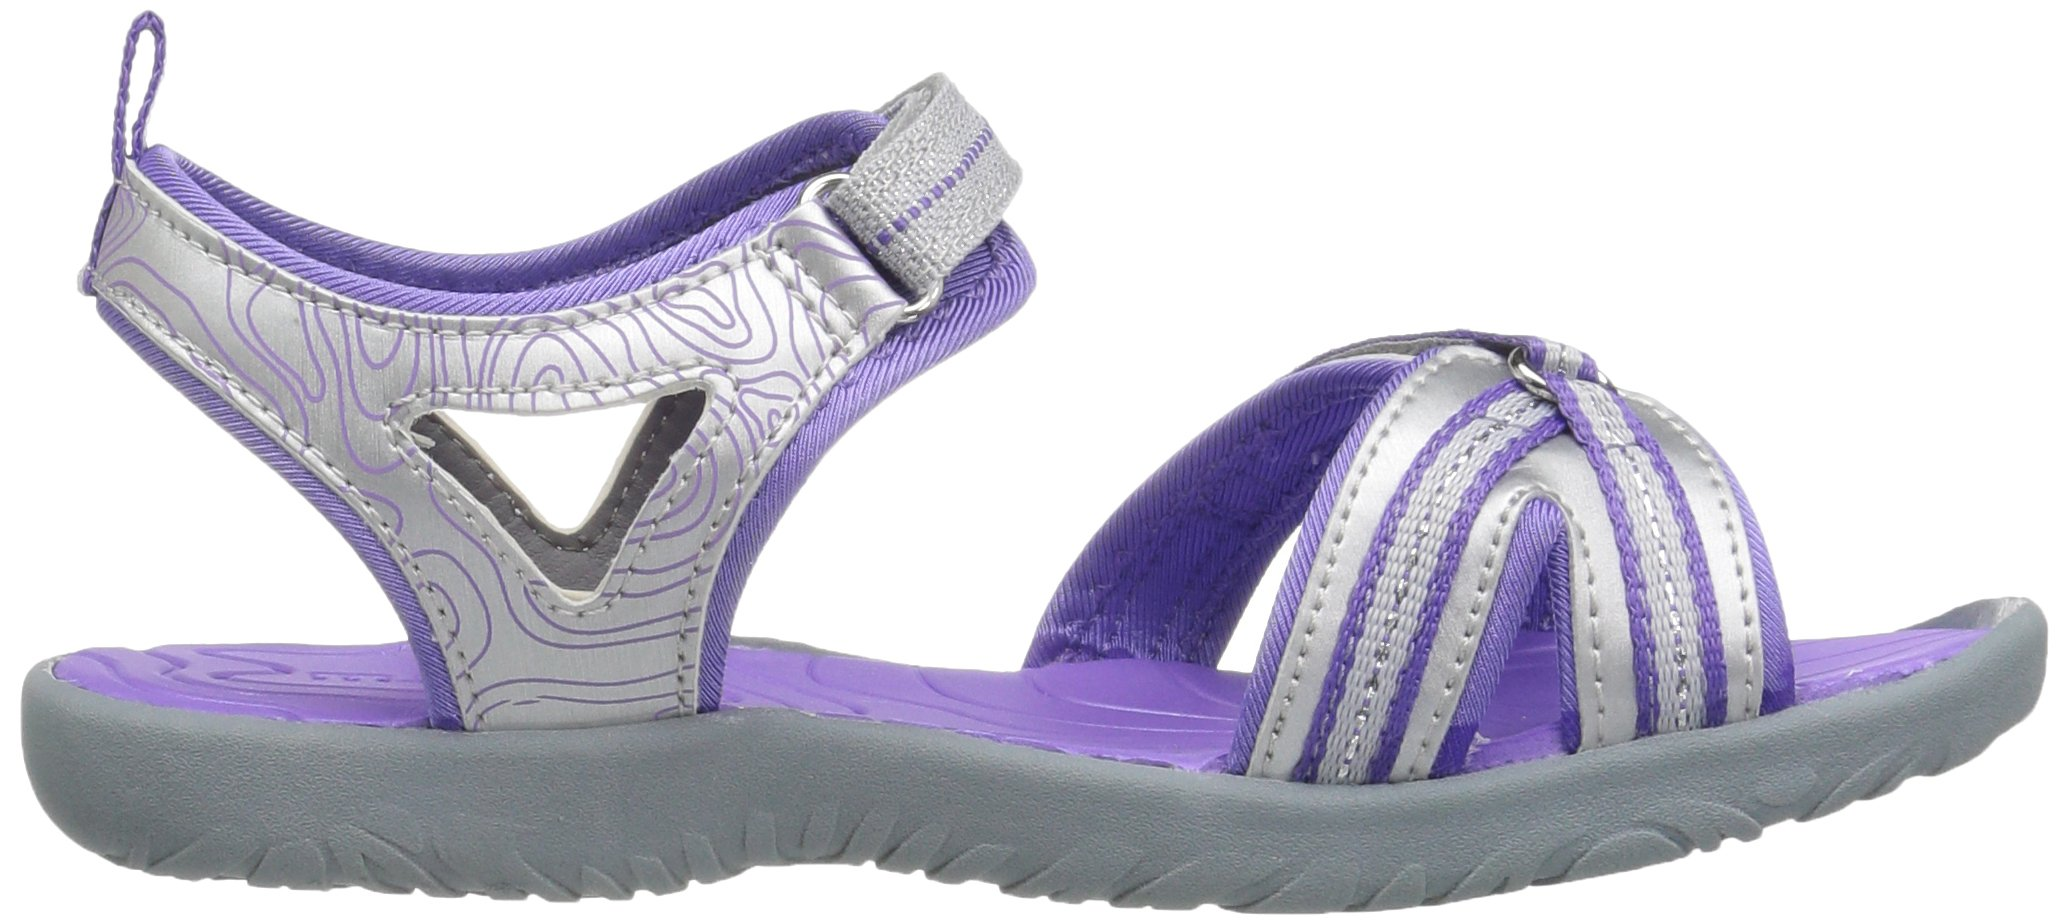 M.A.P. Lorna Girl's Outdoor Sandal, Silver/Purple, 2 M US Little Kid by M.A.P. (Image #7)